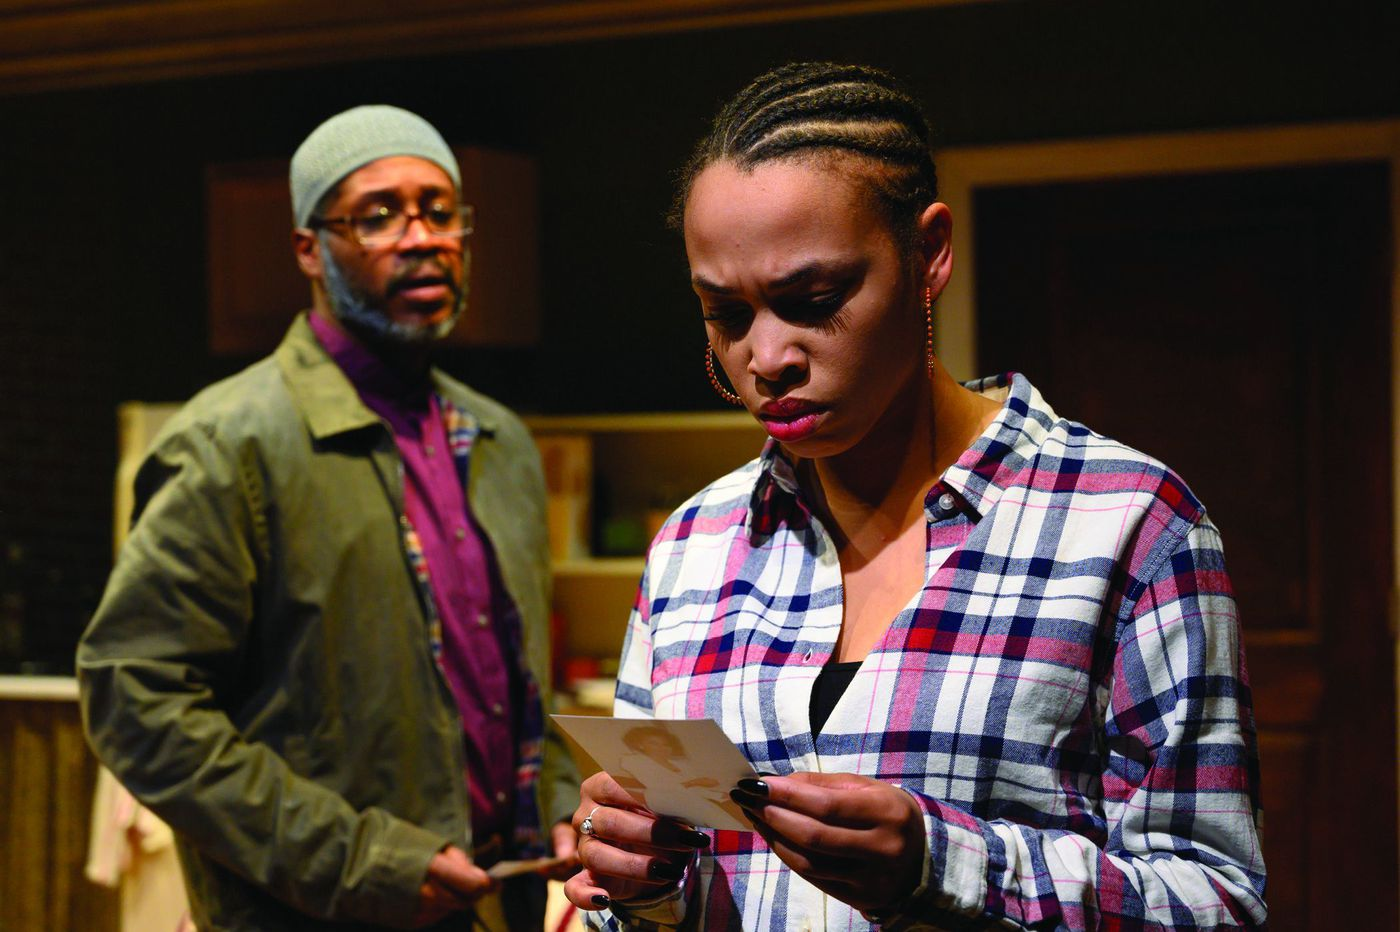 'Sunset Baby' at Azuka: A talent trove of acting in Dominique Morisseau's small gem